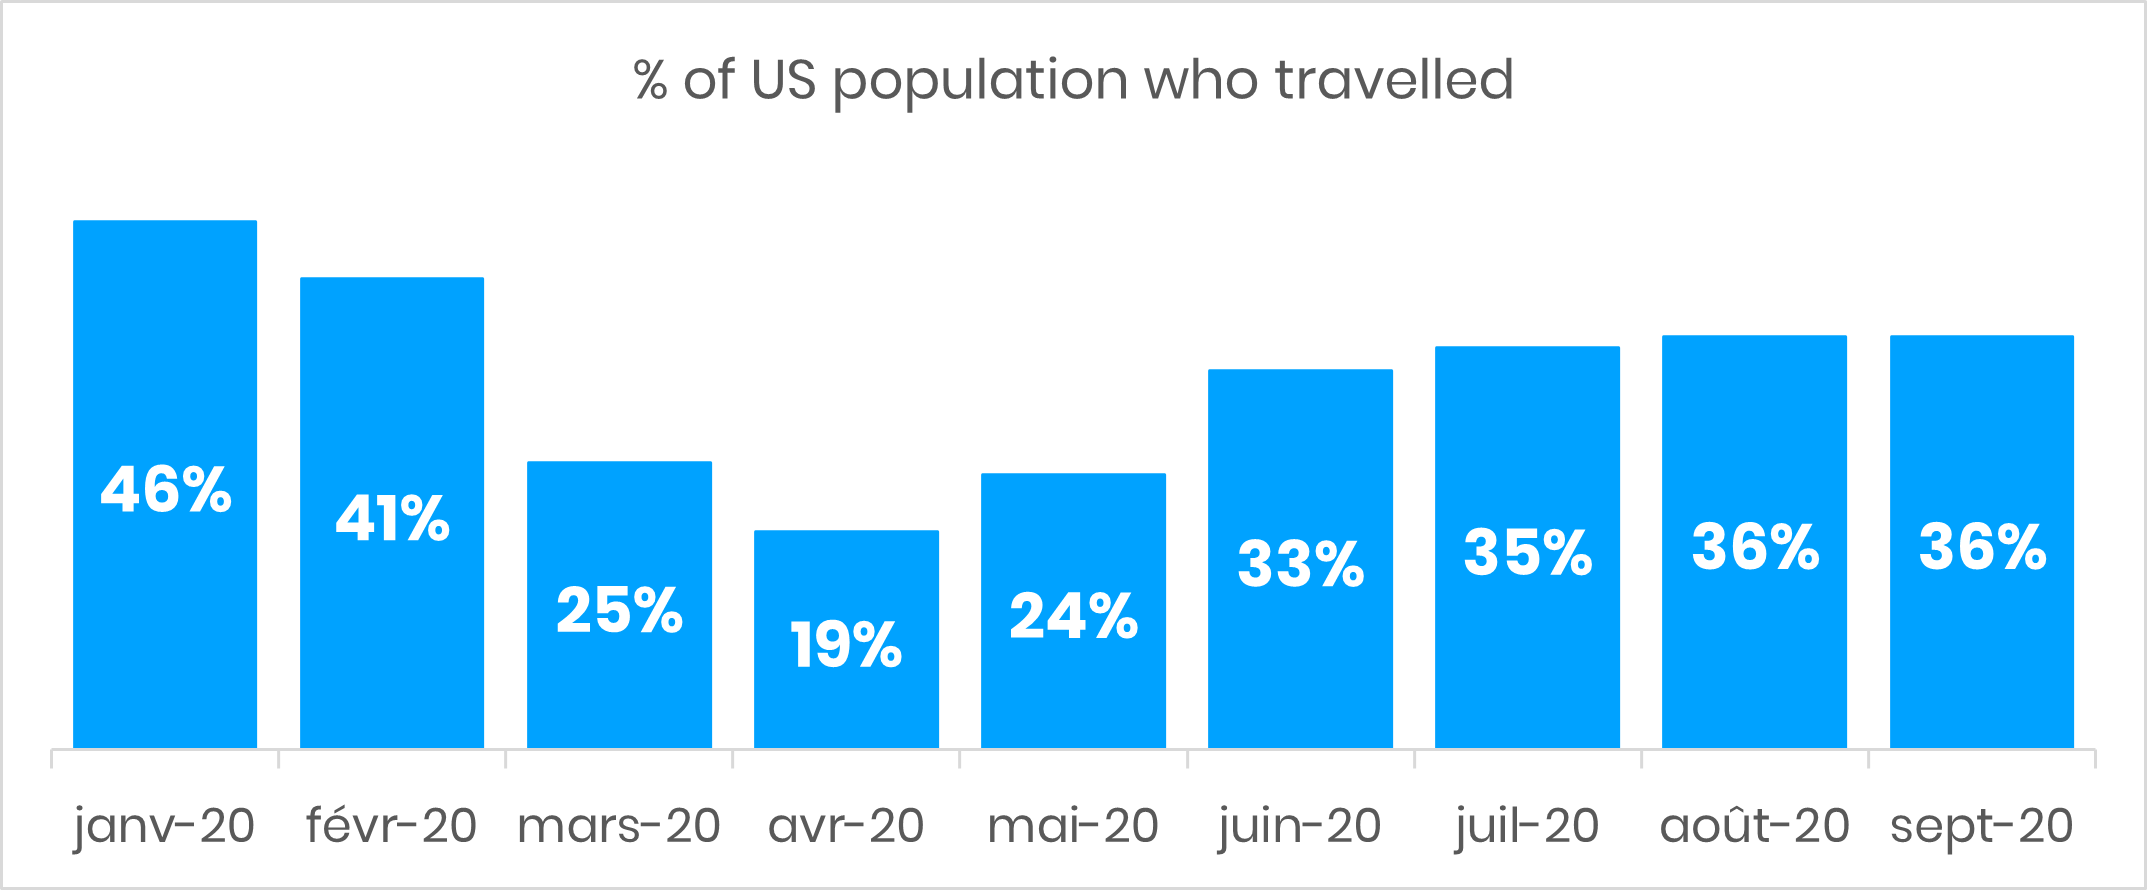 % of US population who travelled